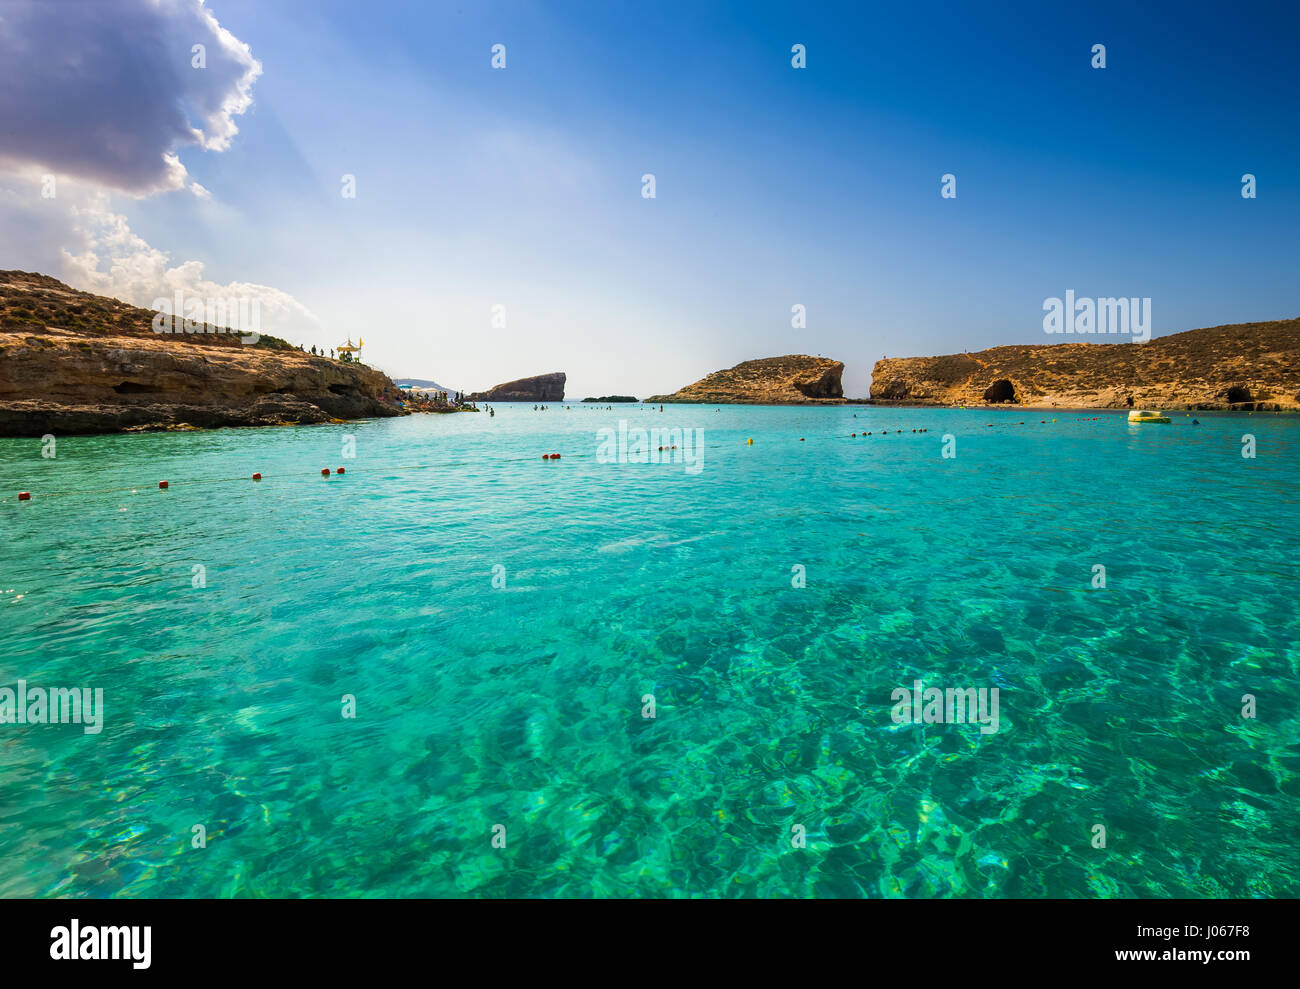 Comino, Malta - The beautiful azure sea water at the Blue Lagoon on the island of Comino on a bright sunny summer - Stock Image